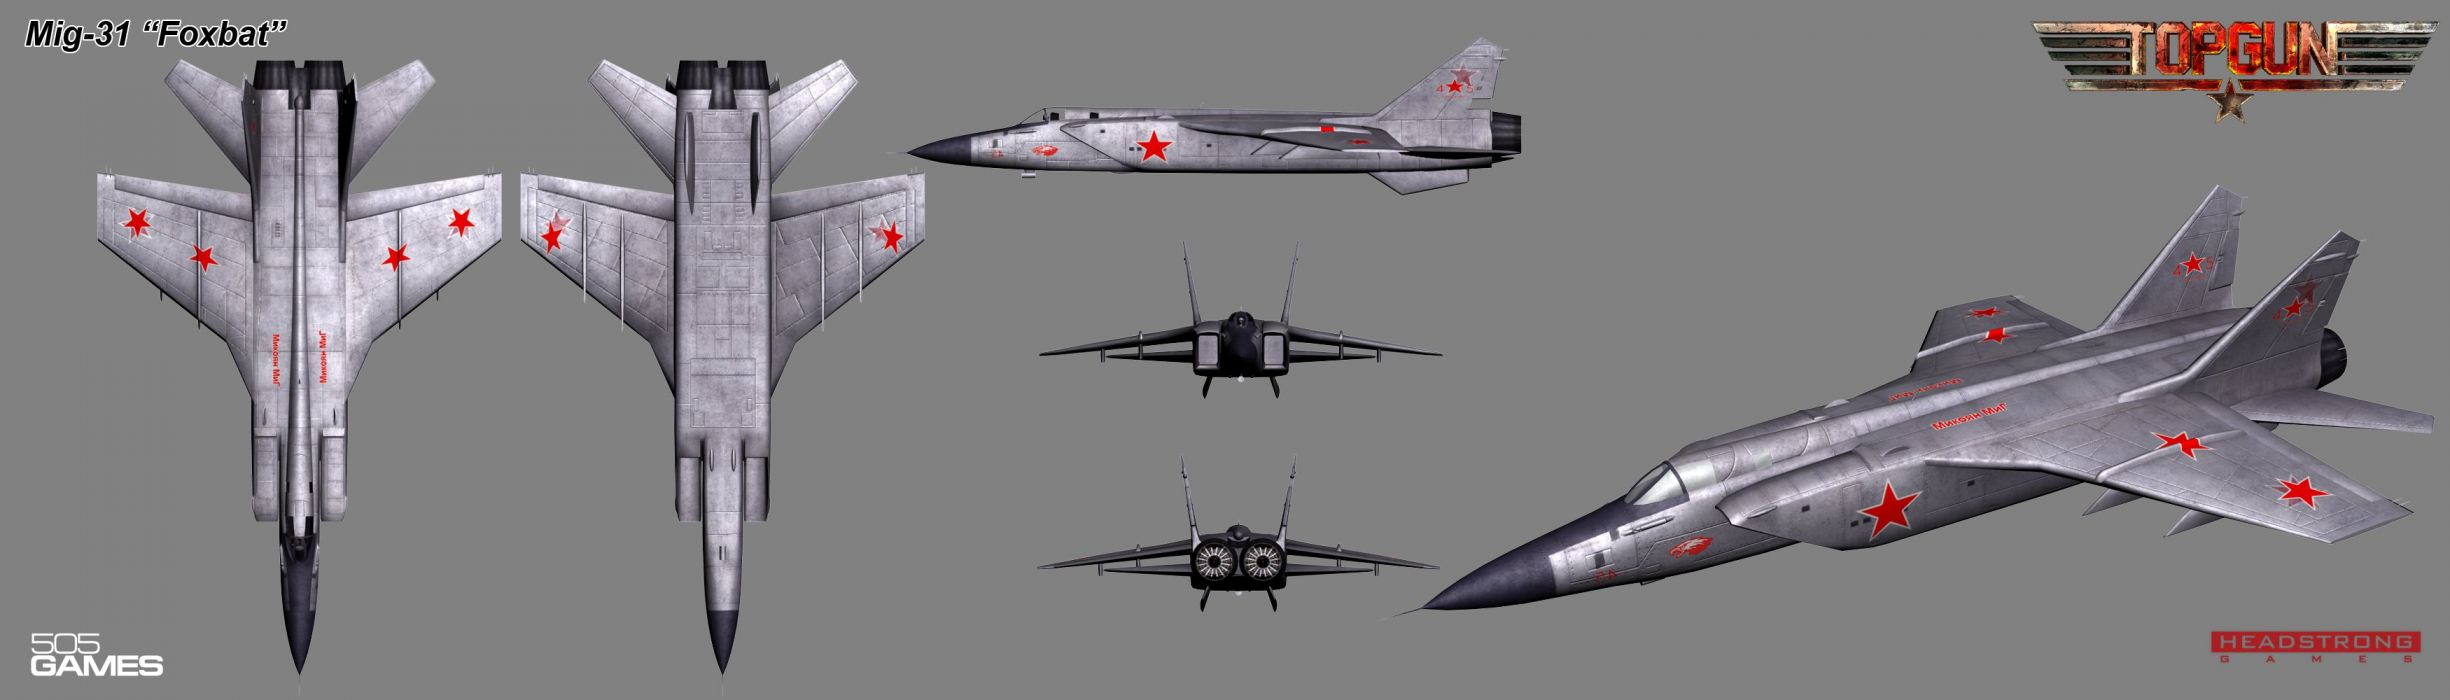 MIG-31 fighter jet military airplane plane russian mig (6) wallpaper